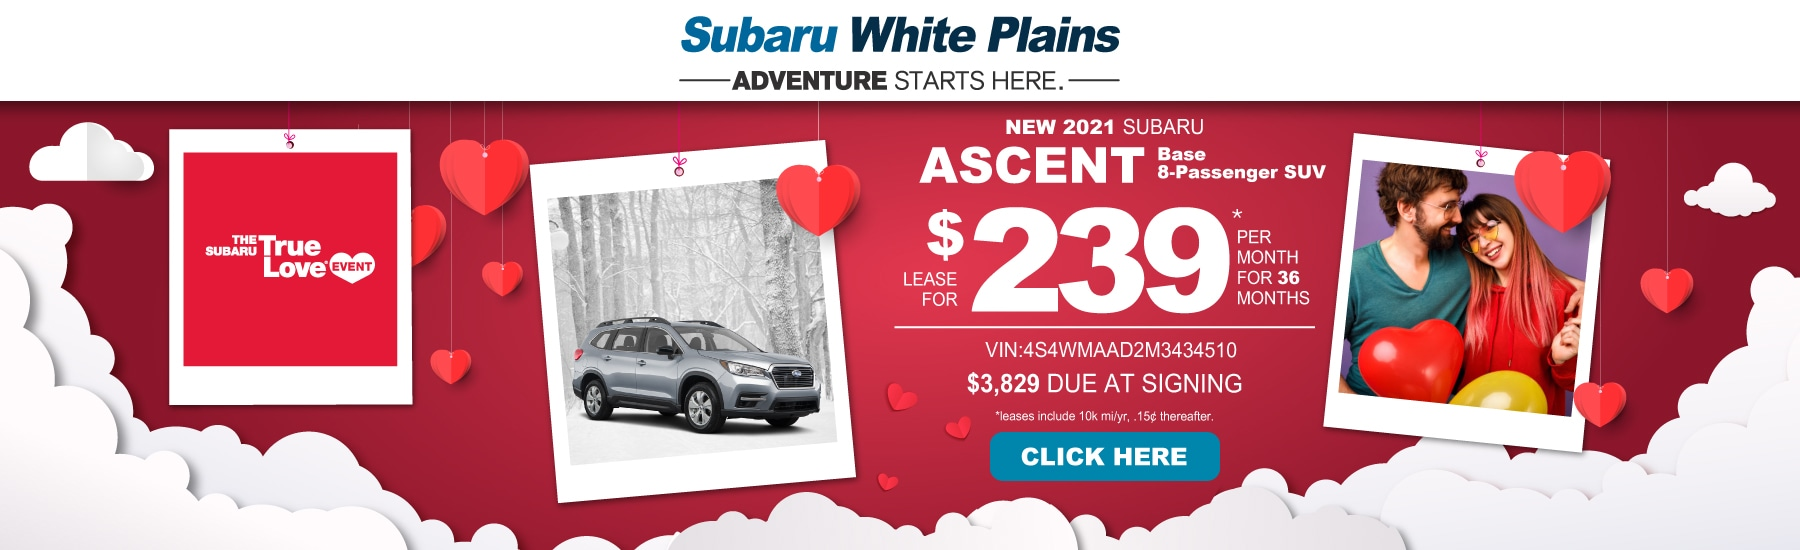 Subaru Ascent Lease Image